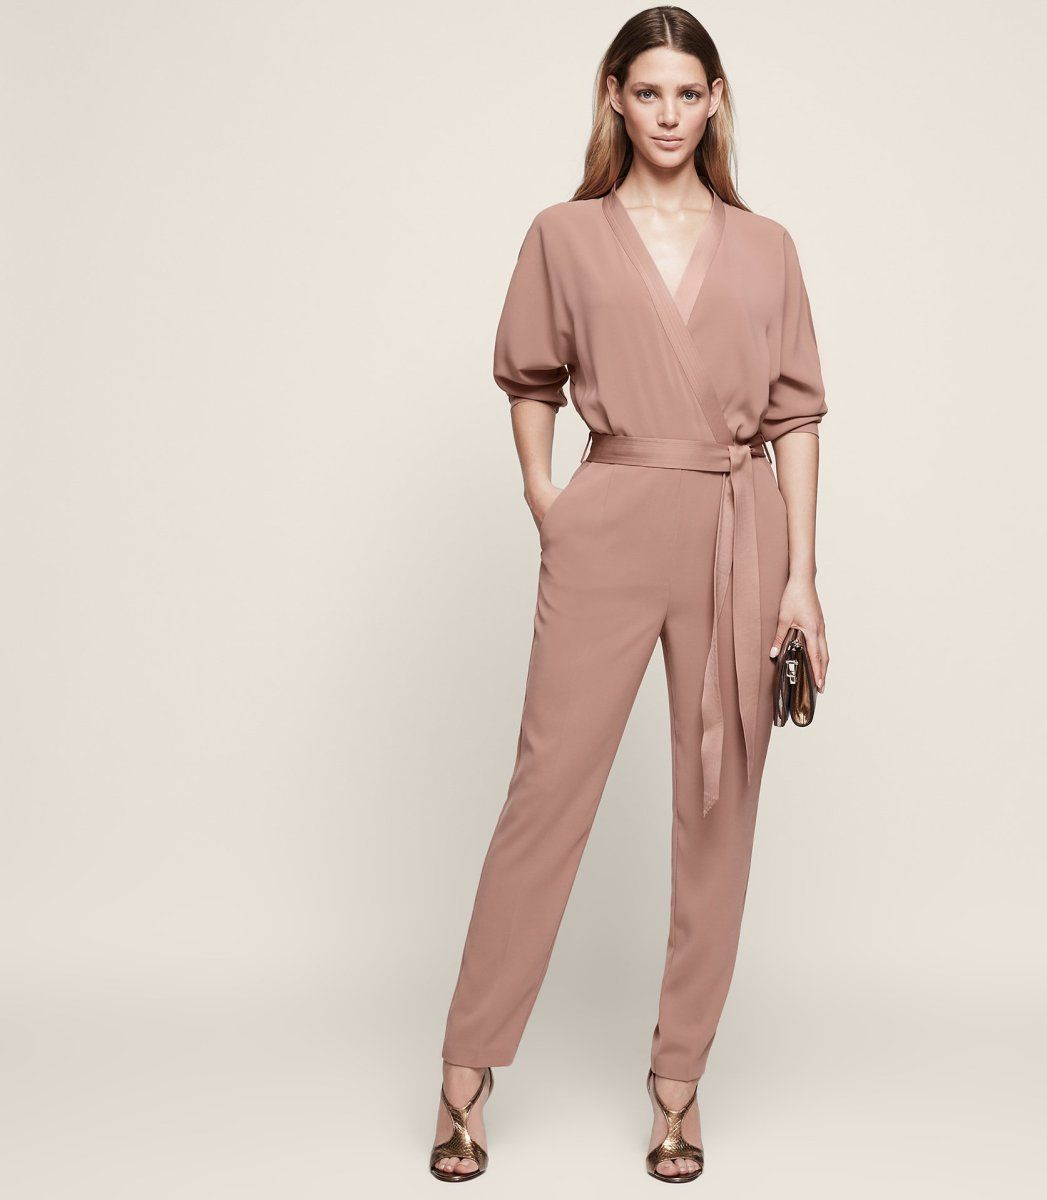 c6337a6277 Etta wrap-front jumpsuit with pockets from Reiss.  wewantpockets   pocketsrock www.